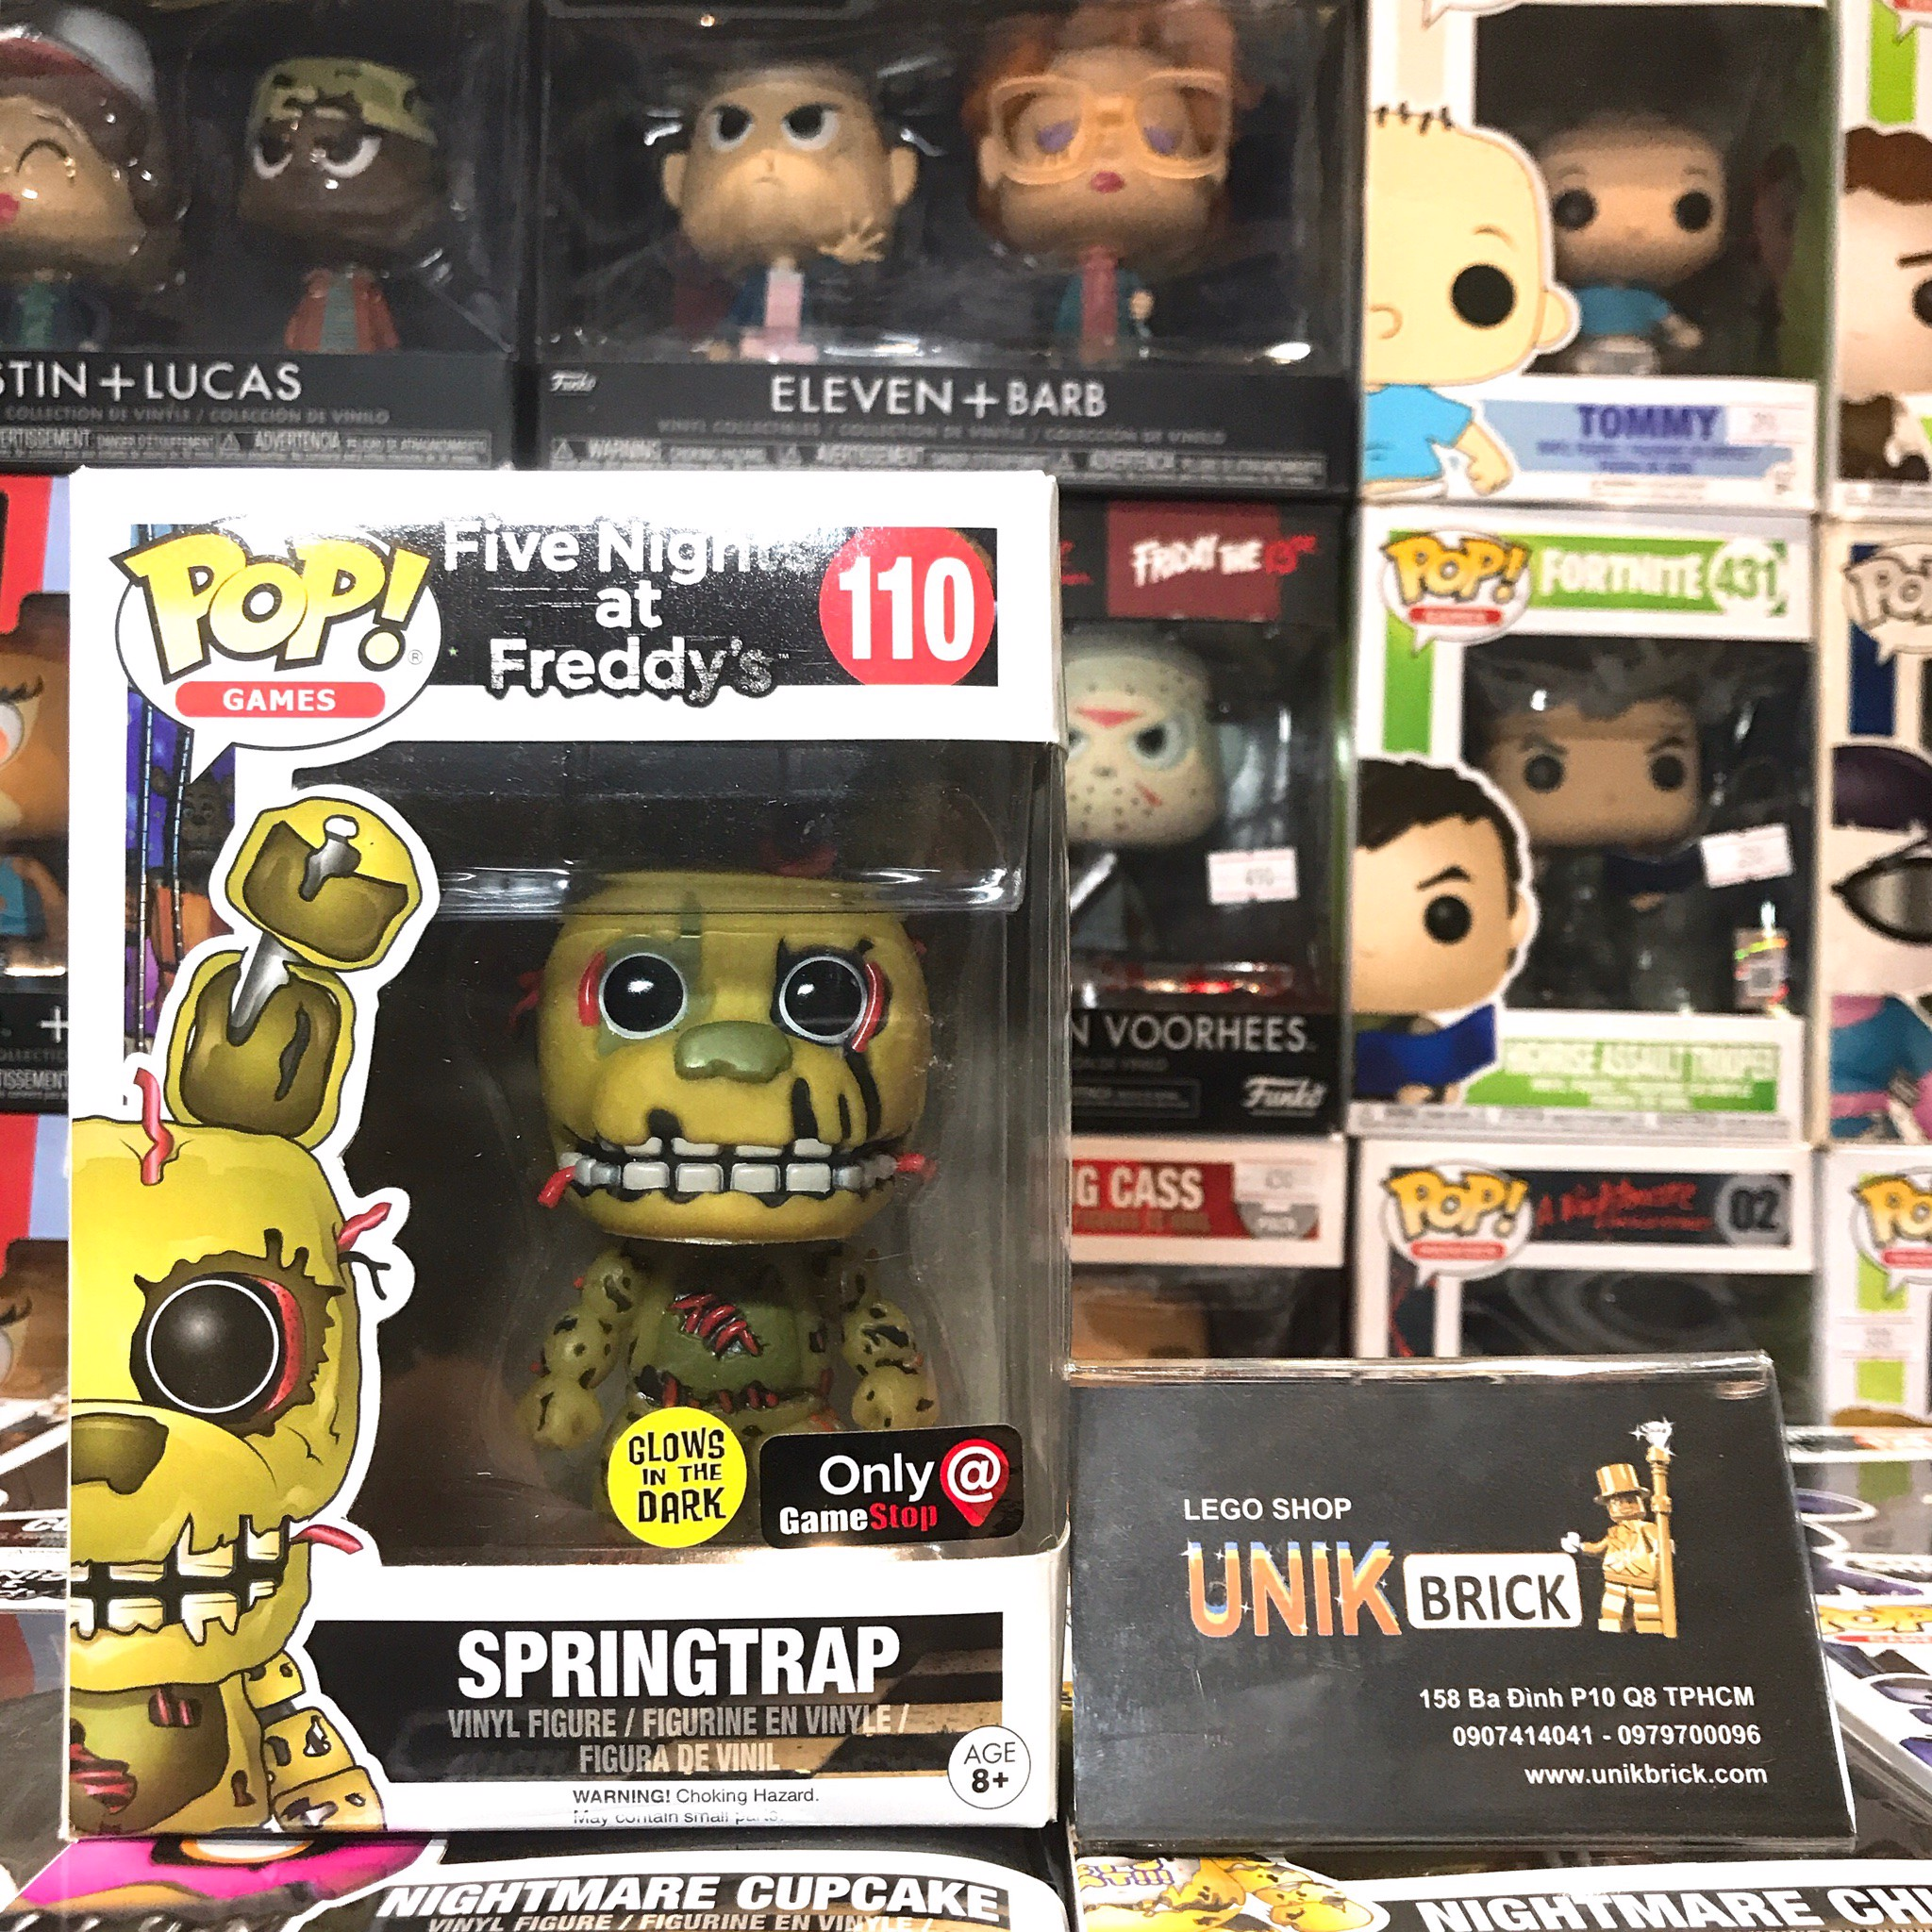 FUNKO POP Five Nights at Freddy's 110 Springtrap Game Stop Glows